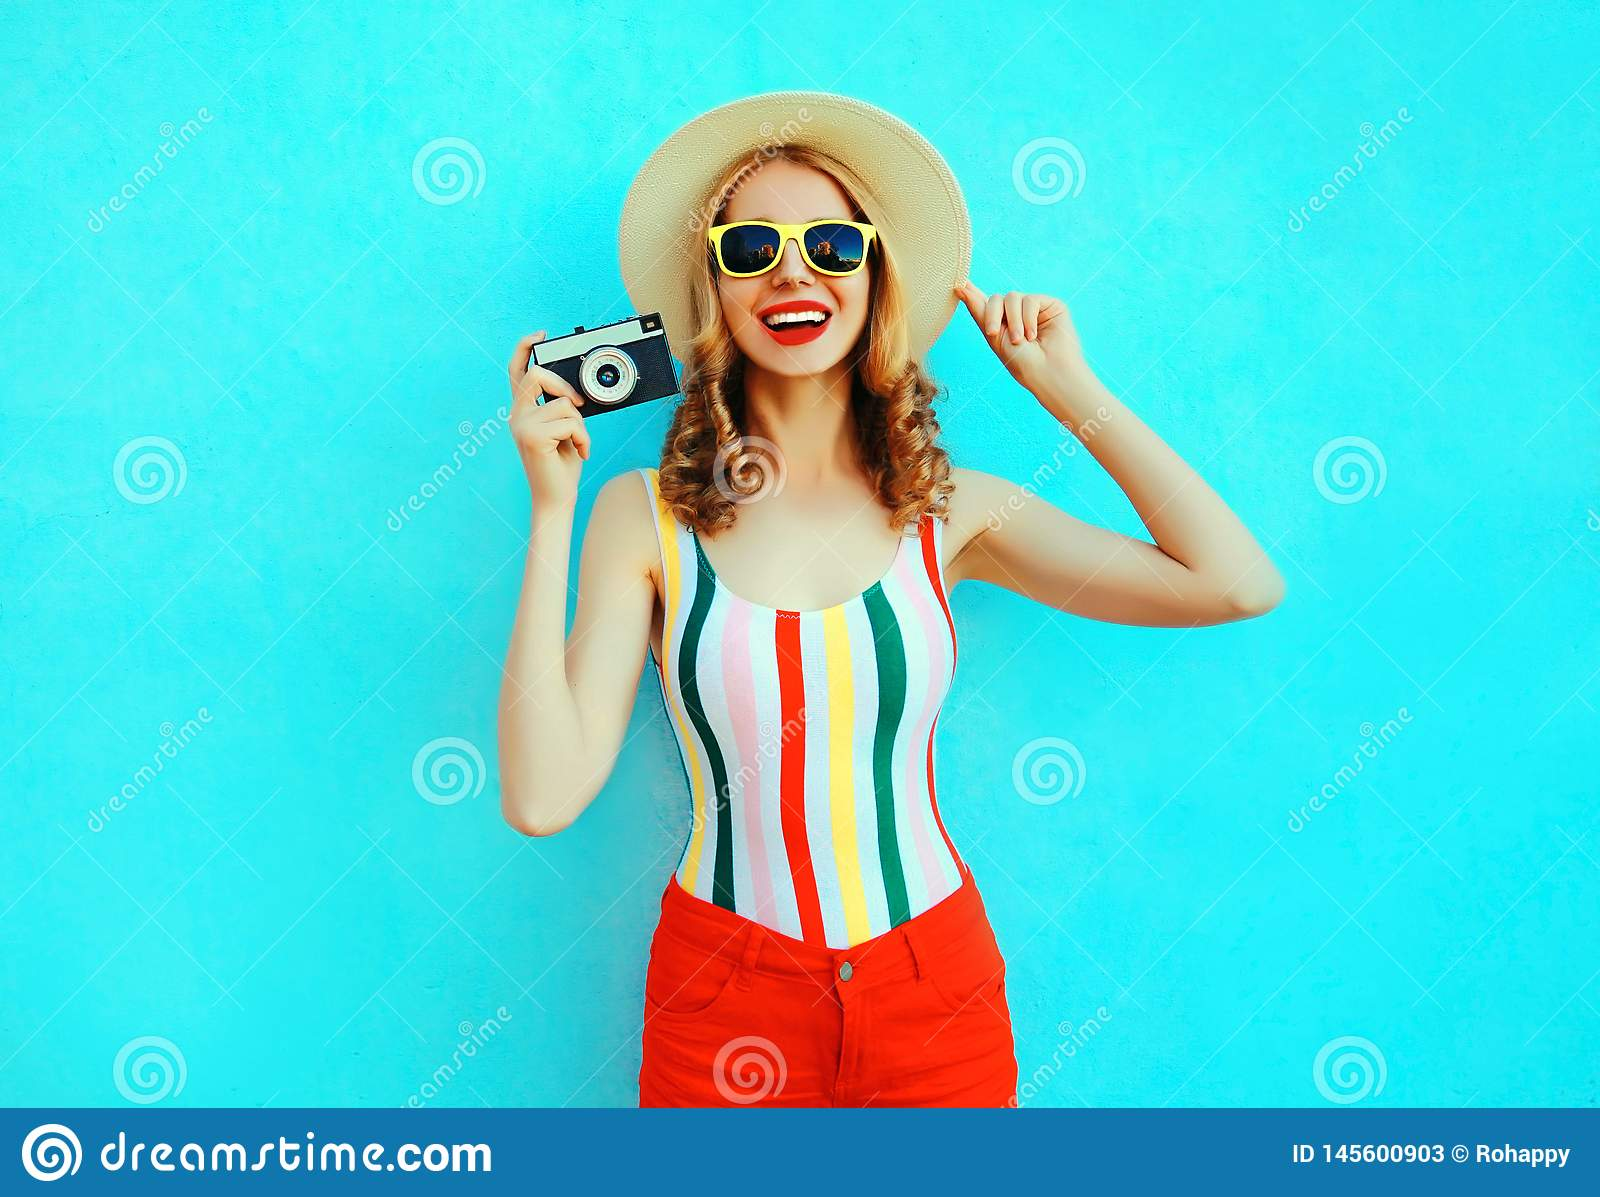 Colorful happy smiling young woman holding retro camera in summer straw hat having fun on blue wall